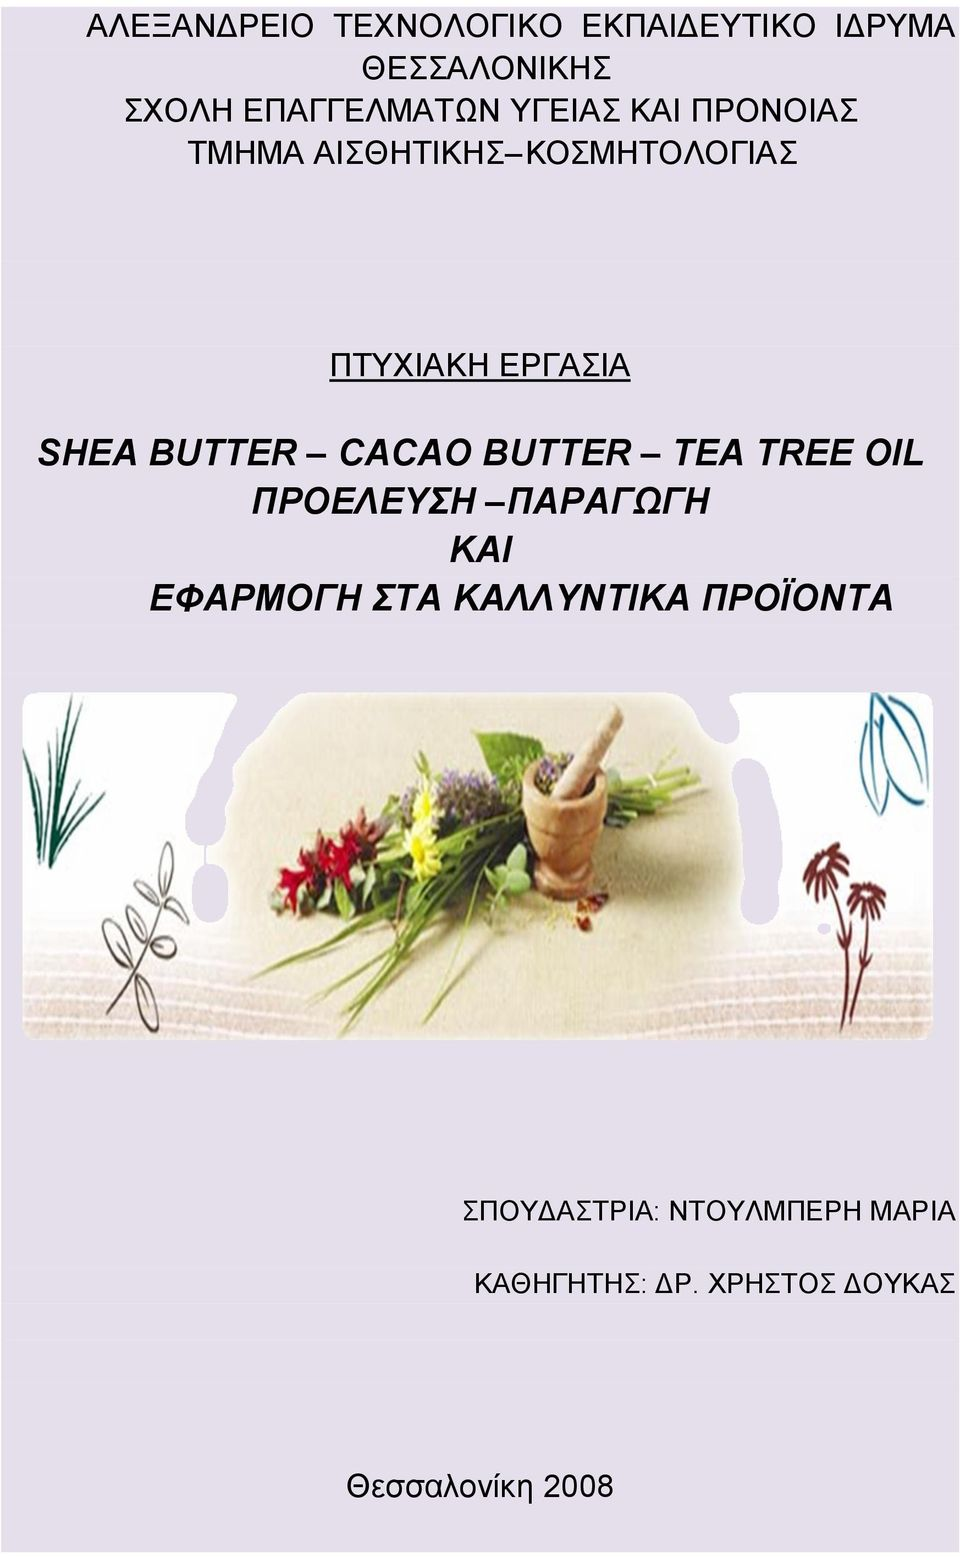 BUTTER CACAO BUTTER TEA TREE OIL ΠΡΟΕΛΕΥΣΗ ΠΑΡΑΓΩΓΗ ΚΑΙ ΕΦΑΡΜΟΓΗ ΣΤΑ